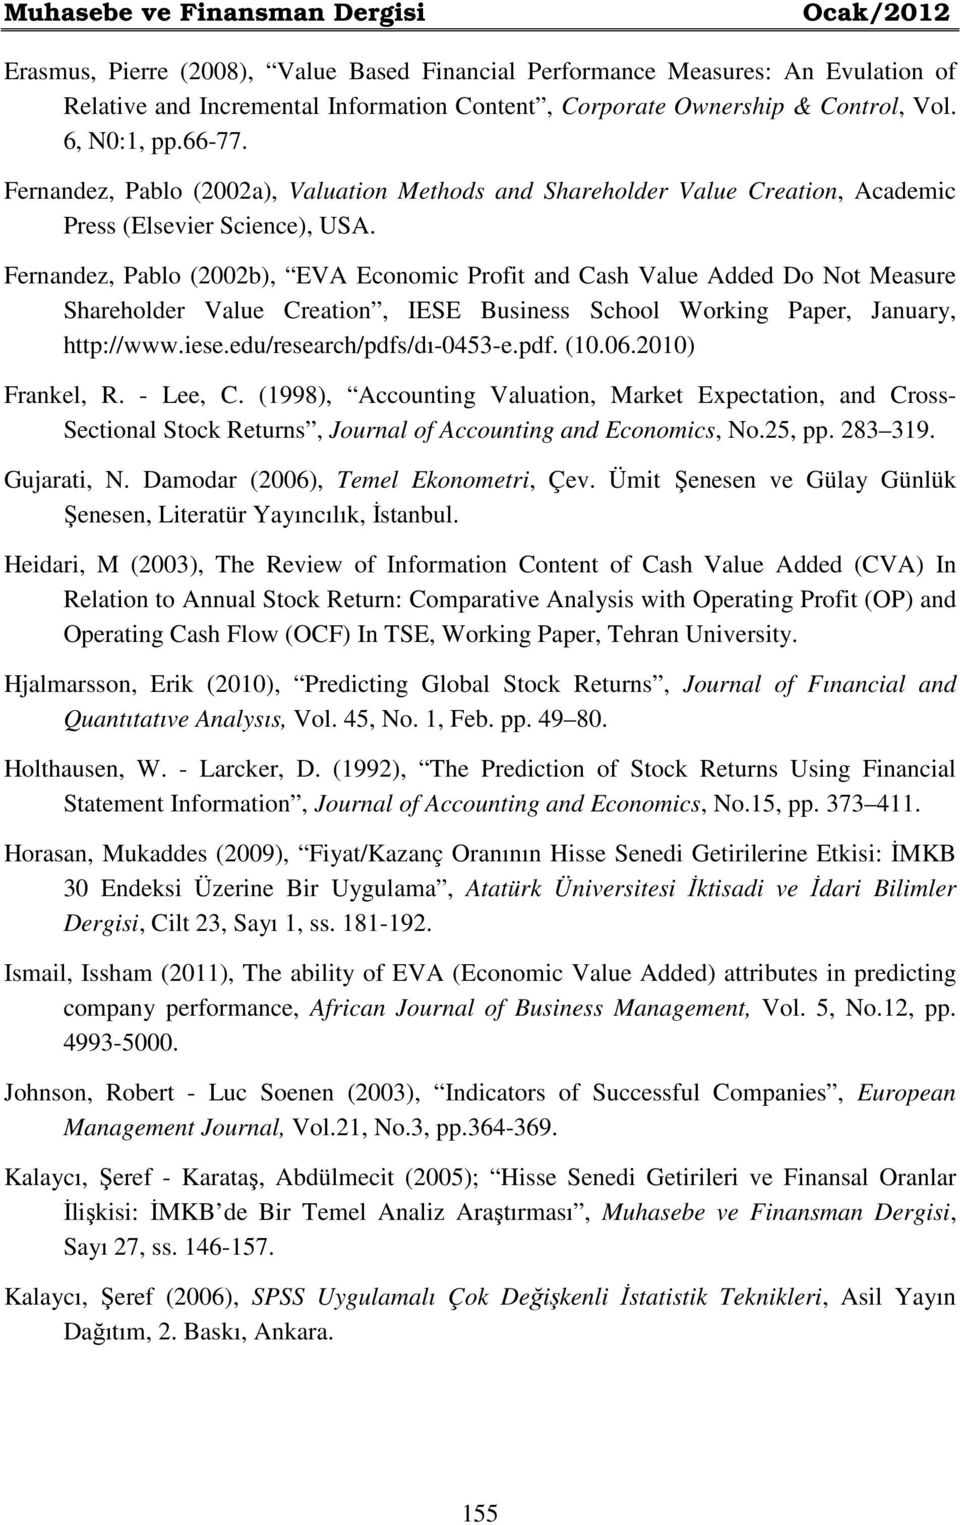 Fernandez, Pablo (2002b), EVA Economic Profit and Cash Value Added Do Not Measure Shareholder Value Creation, IESE Business School Working Paper, January, http://www.iese.edu/research/pdfs/dı-0453-e.